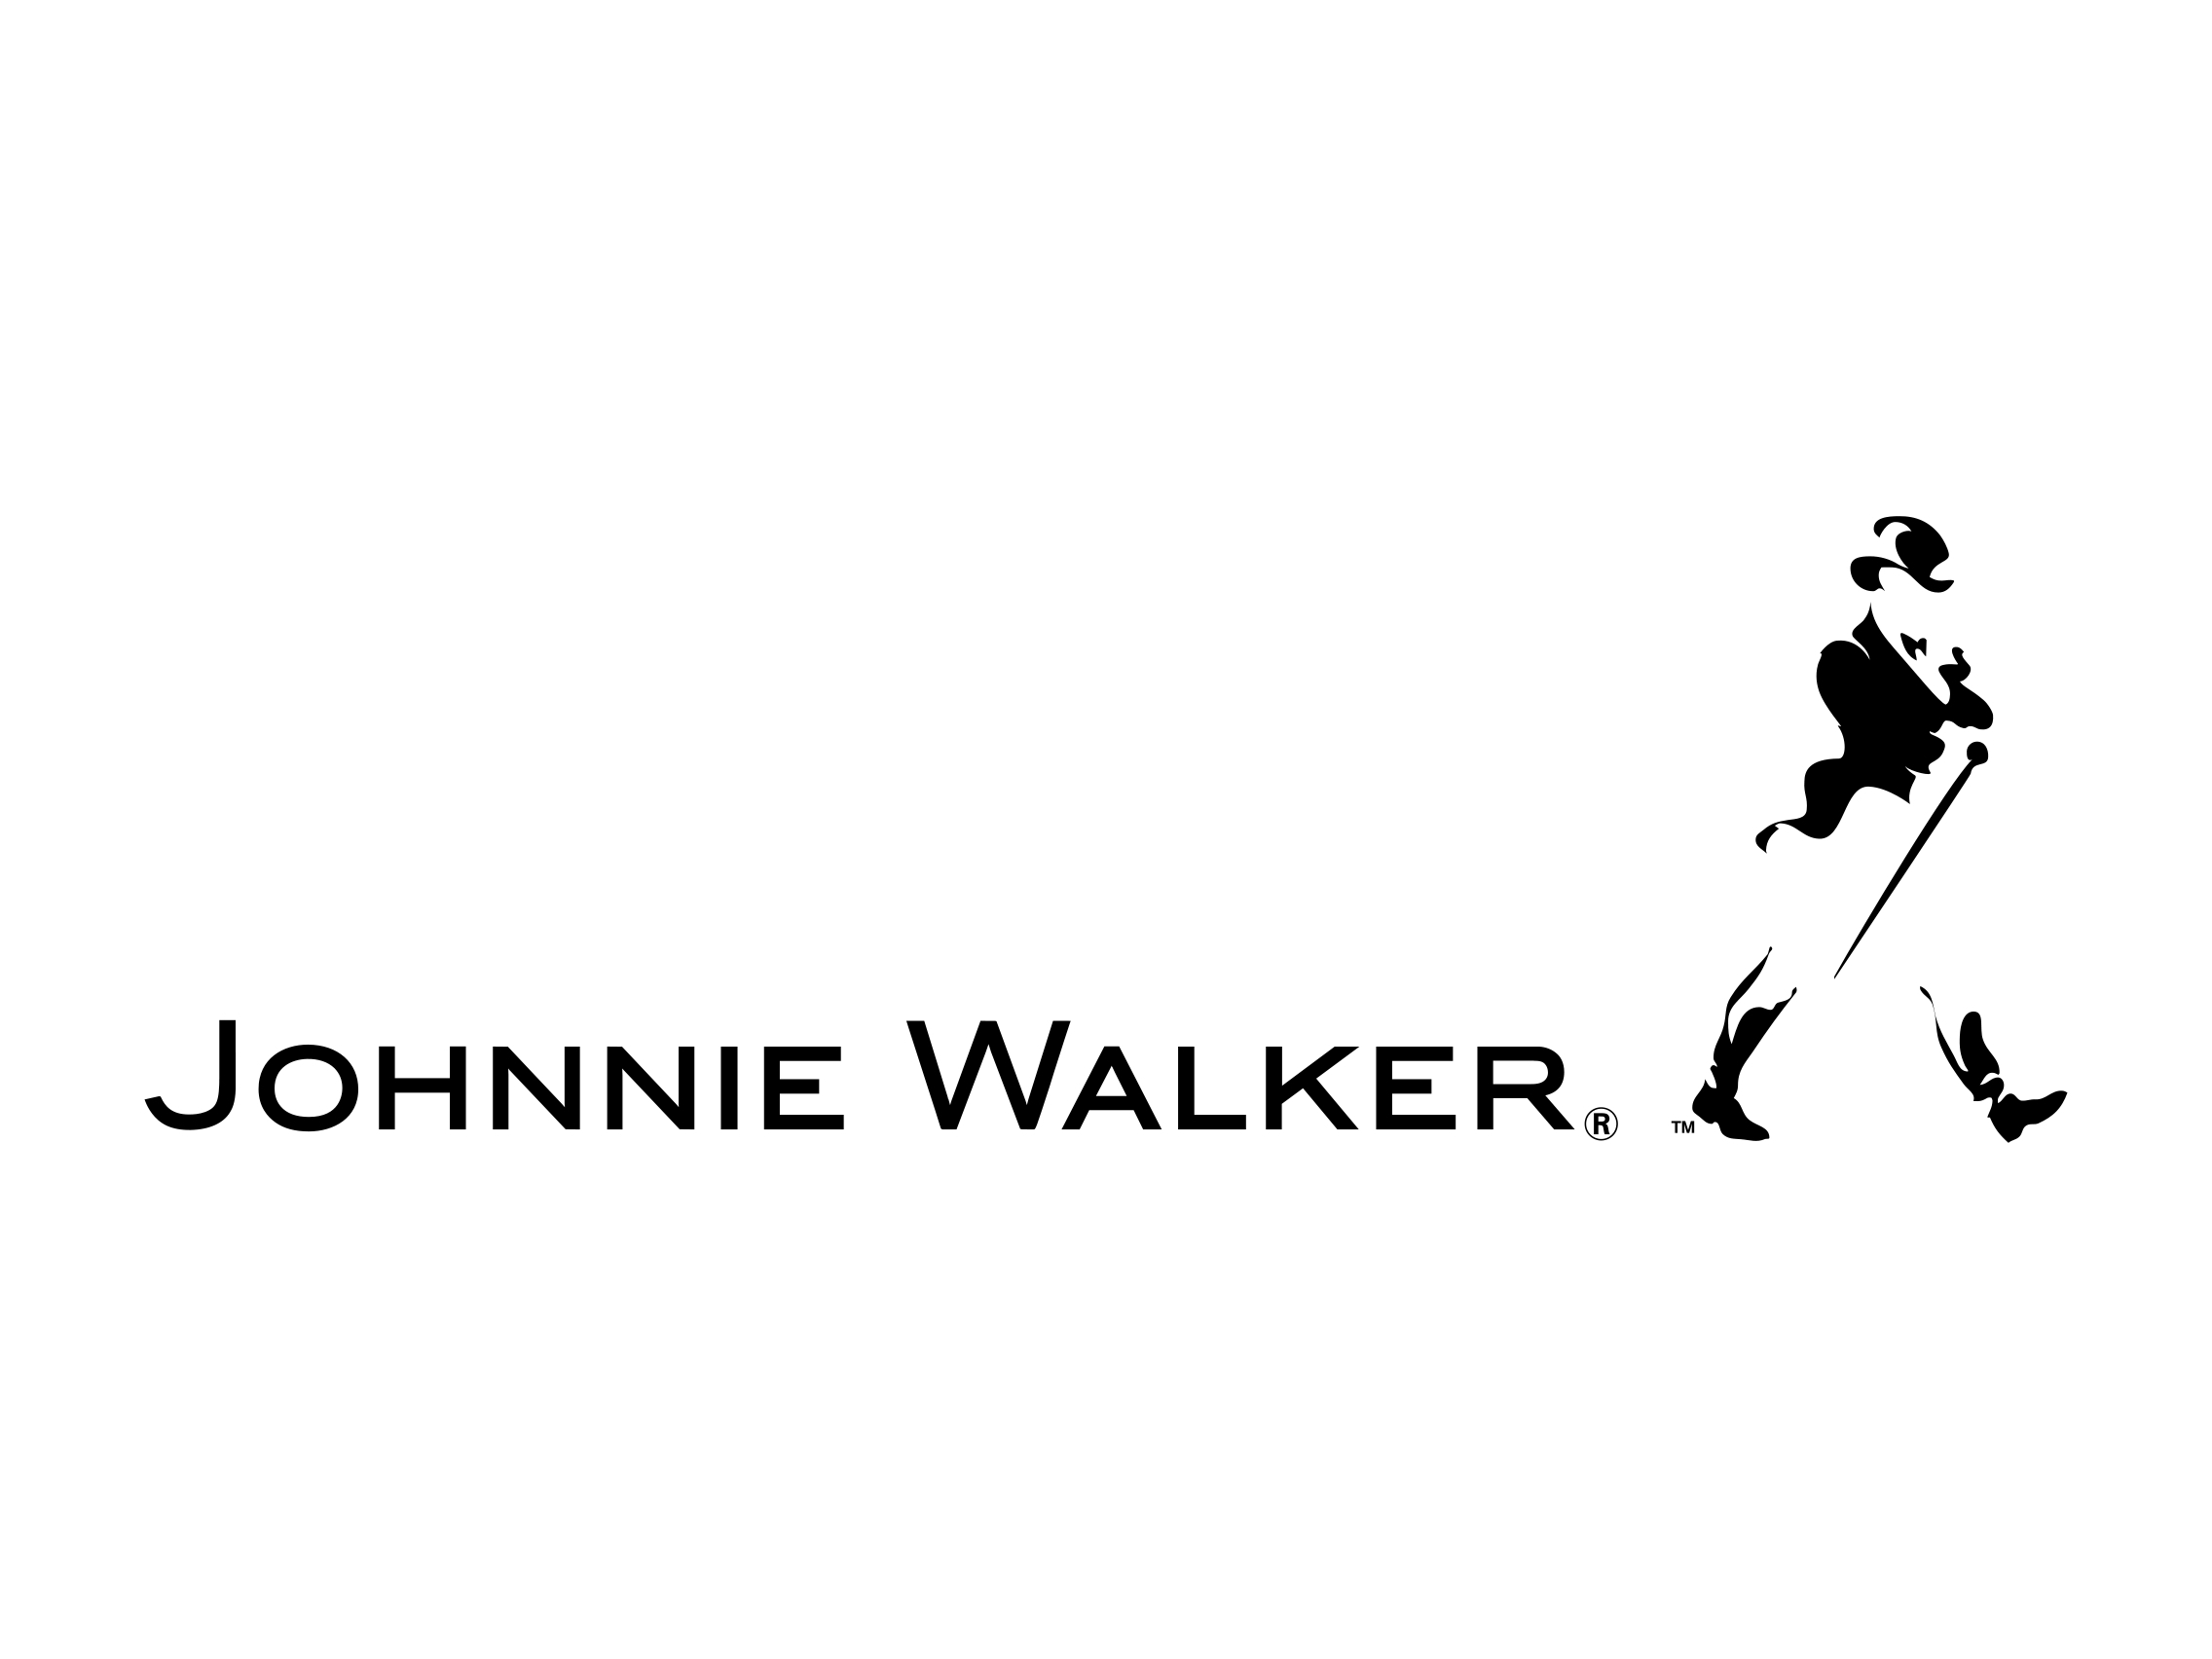 Johnnie walker logo hd wallpapers